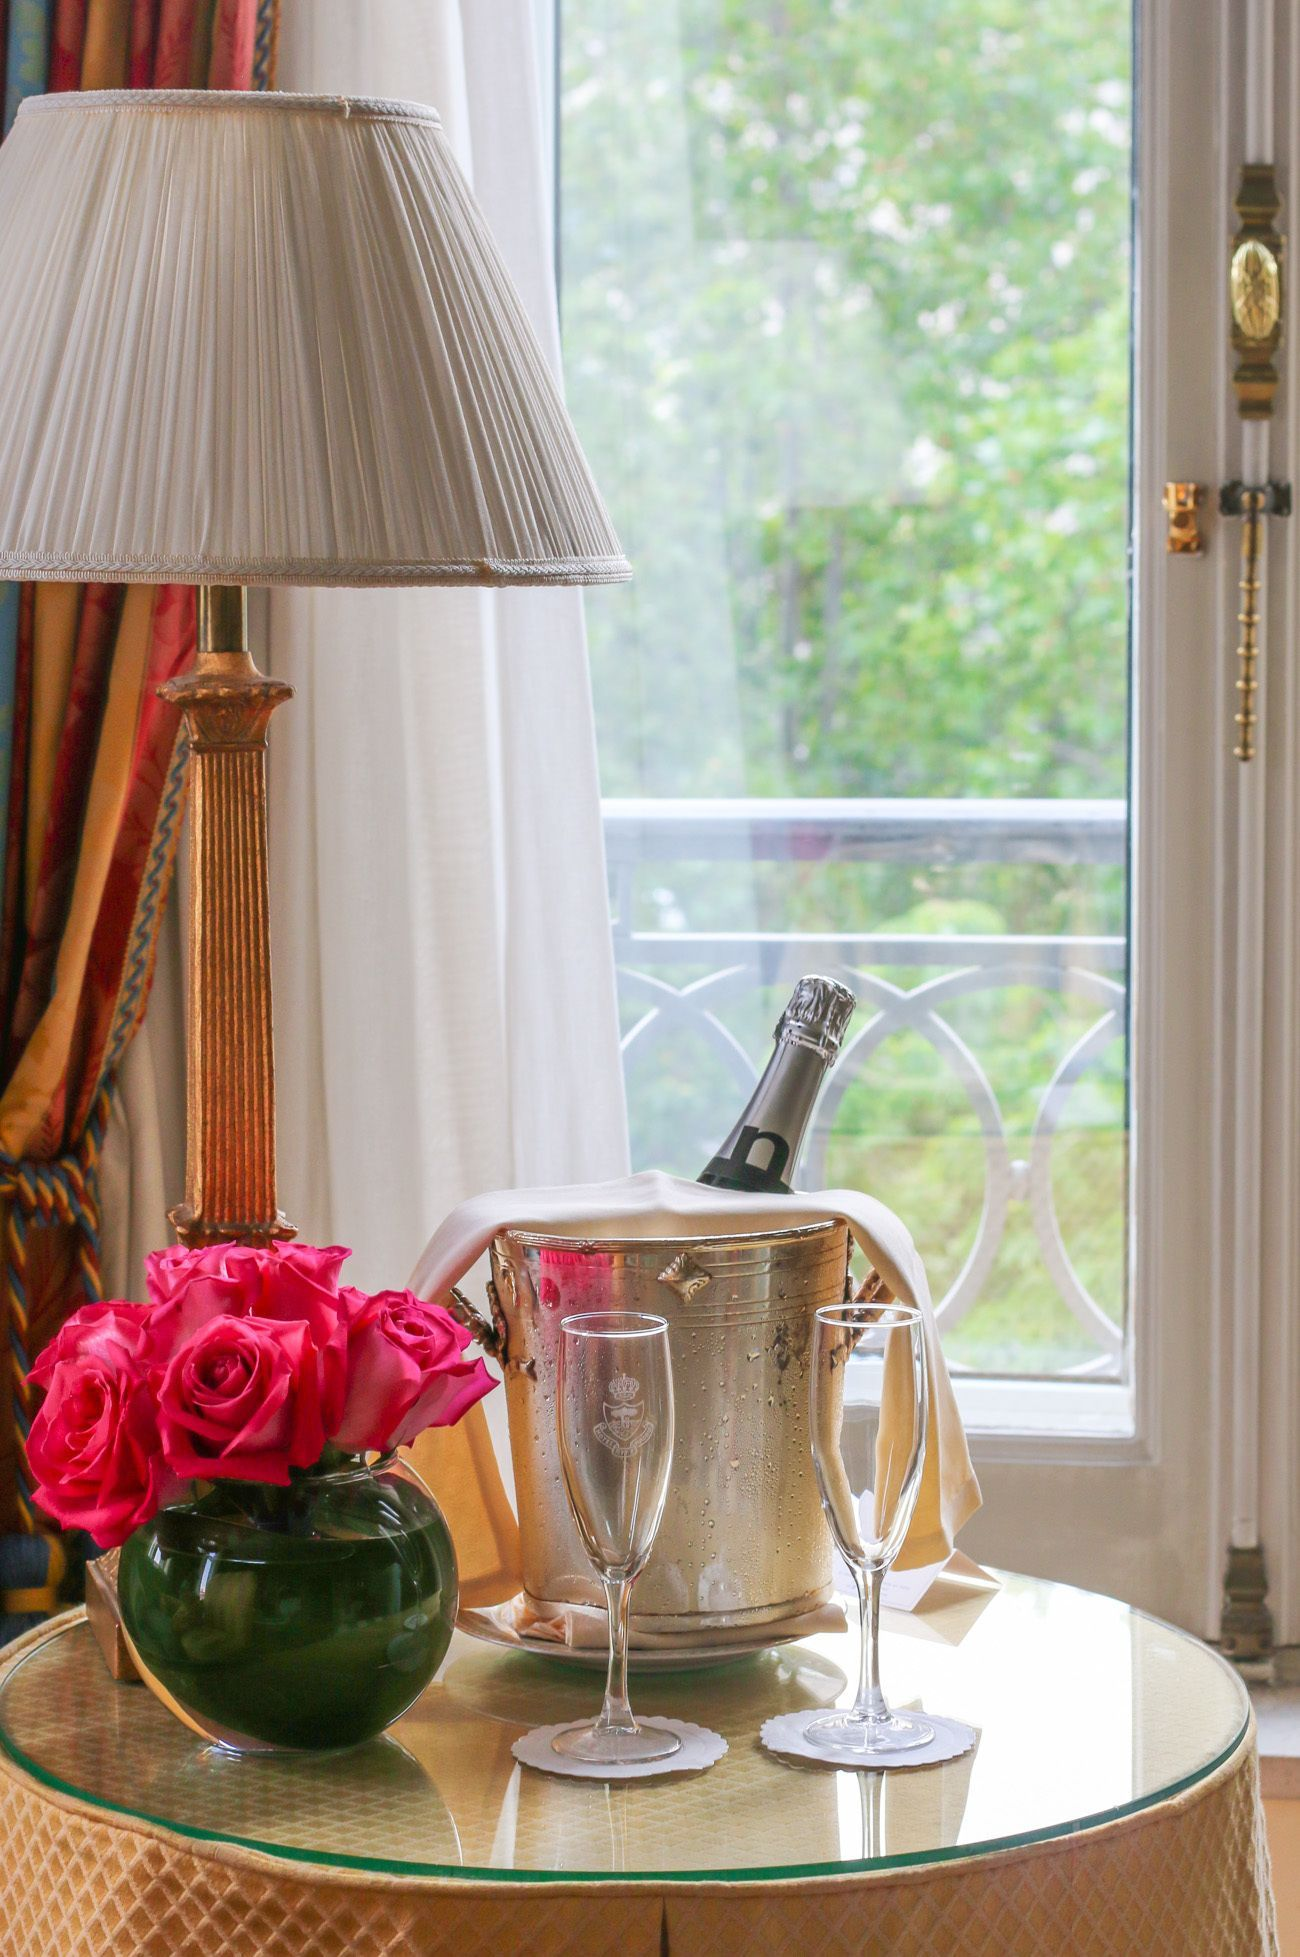 Hotel ritz madrid a family stay in the city 39 s first - Luxury hotels in madrid with swimming pool ...